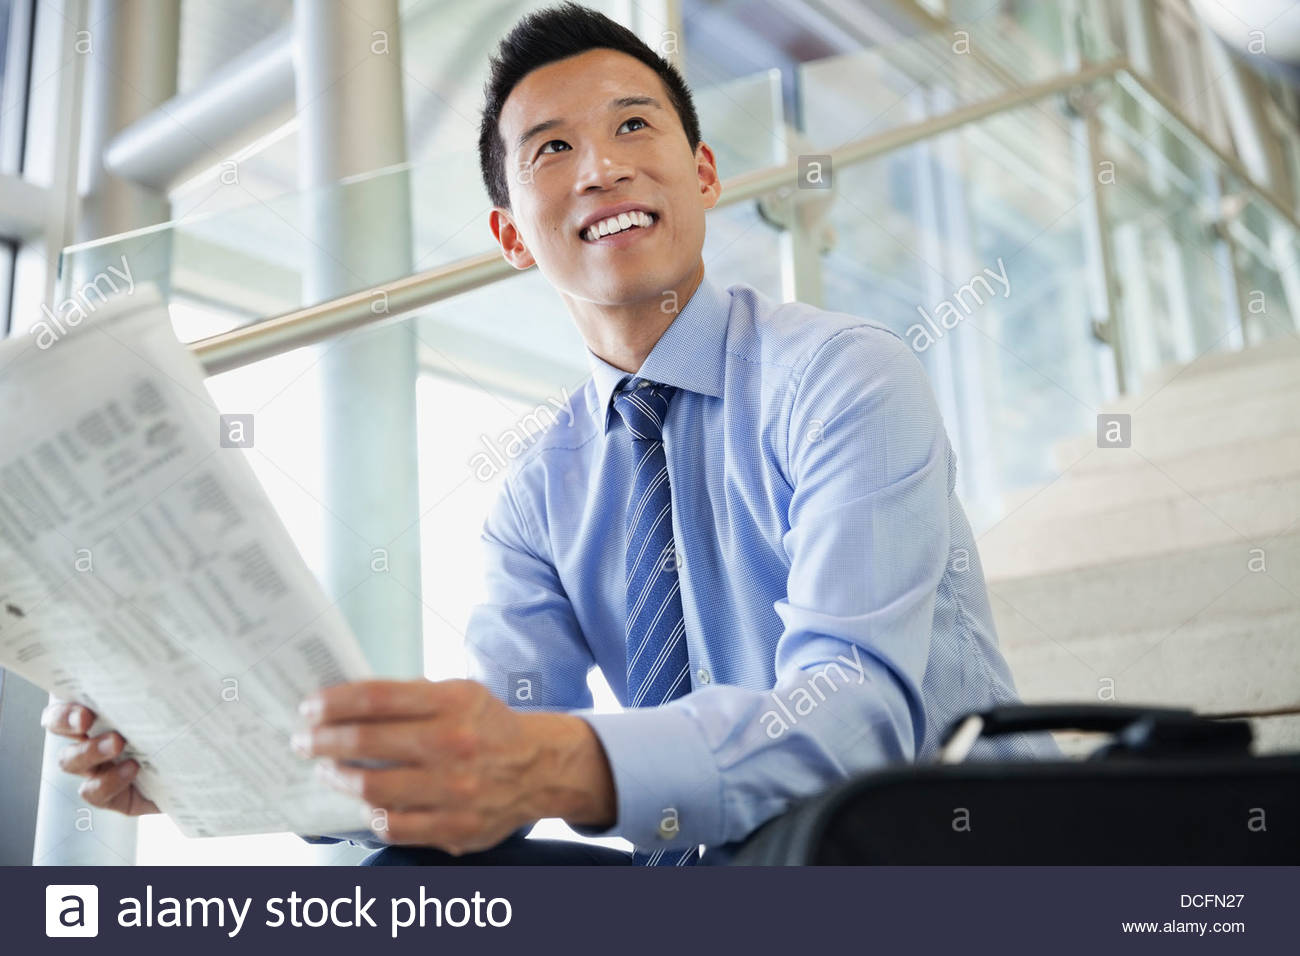 Smiling businessman looking up with newspaper - Stock Image